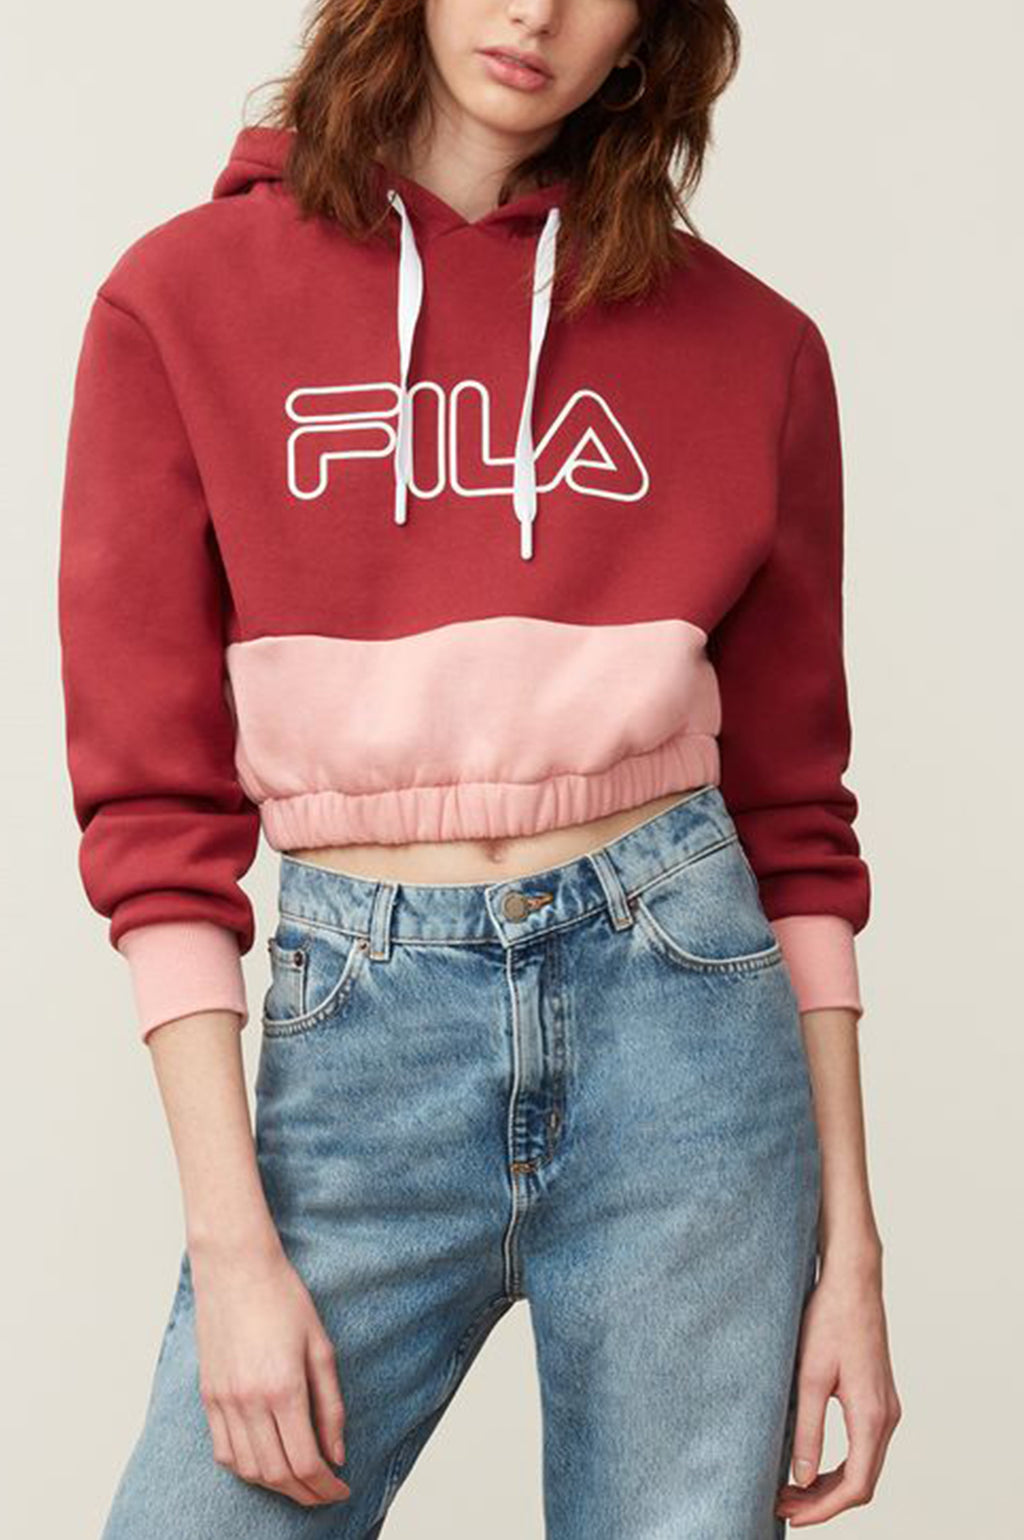 FILA Womens Embroidered Fila Linear Logo